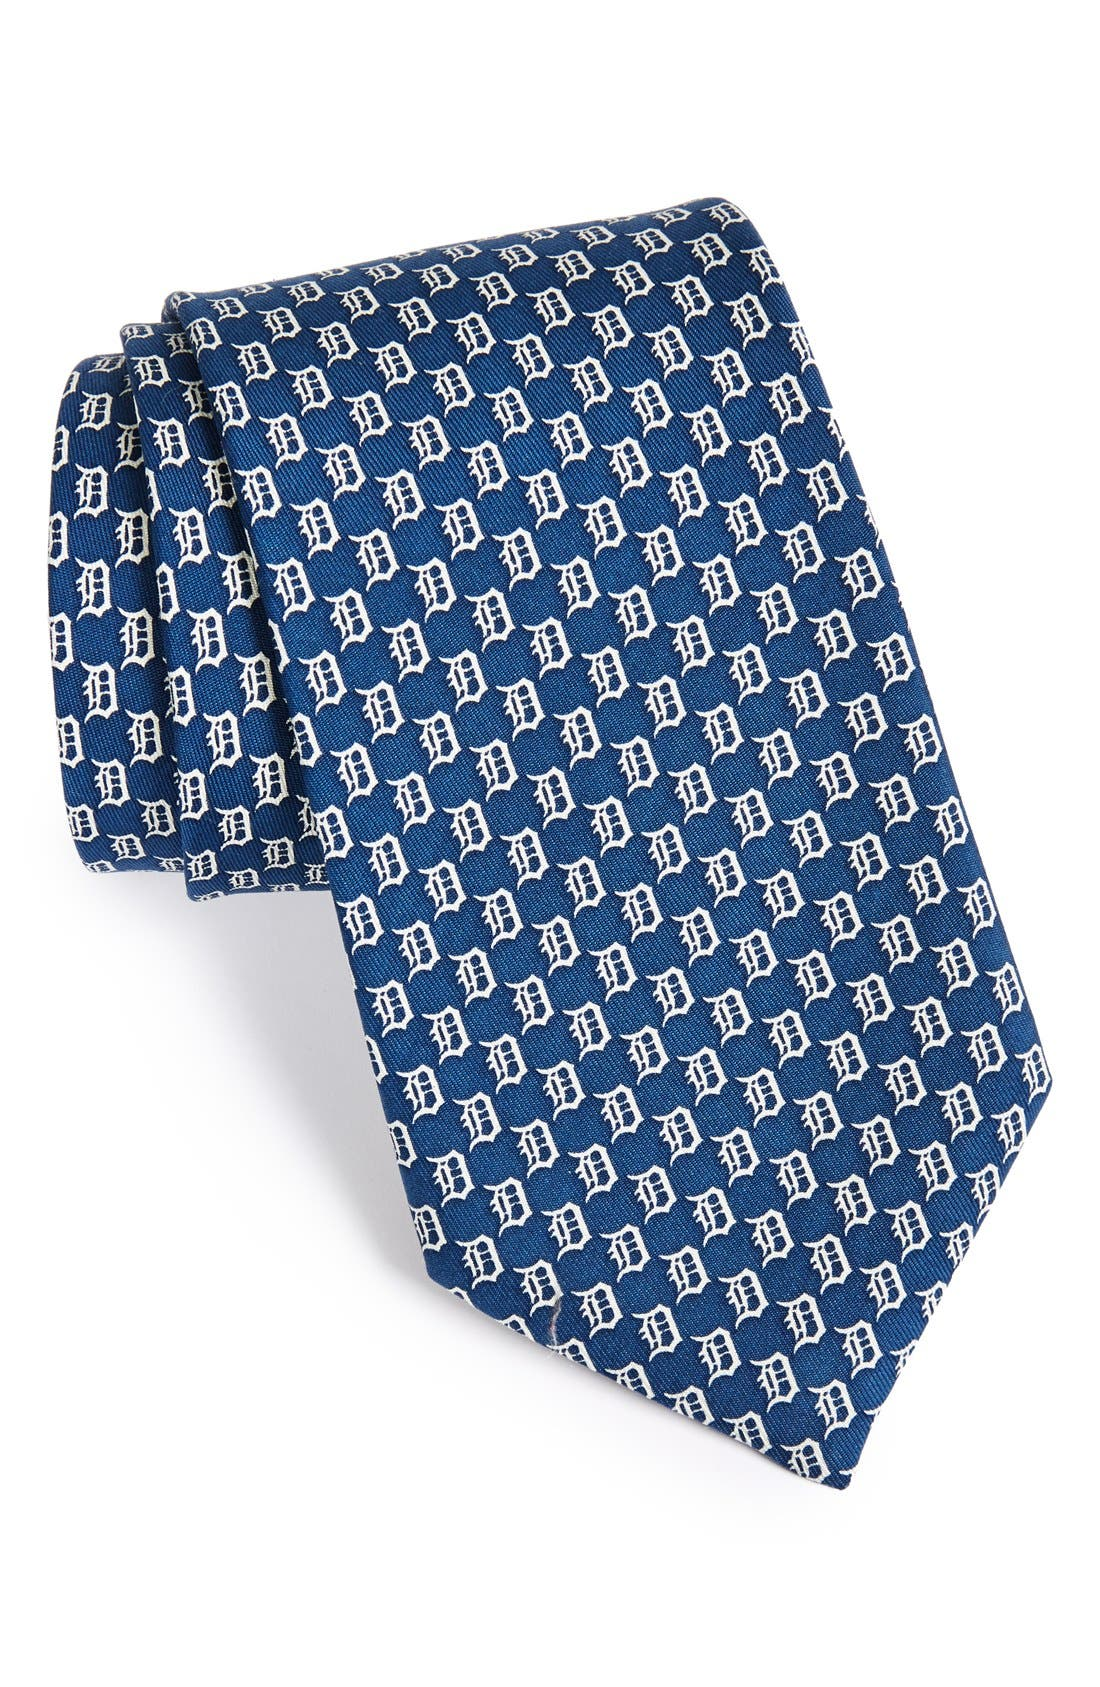 'Detroit Tigers - MLB' Woven Silk Tie,                         Main,                         color, Vineyard Navy